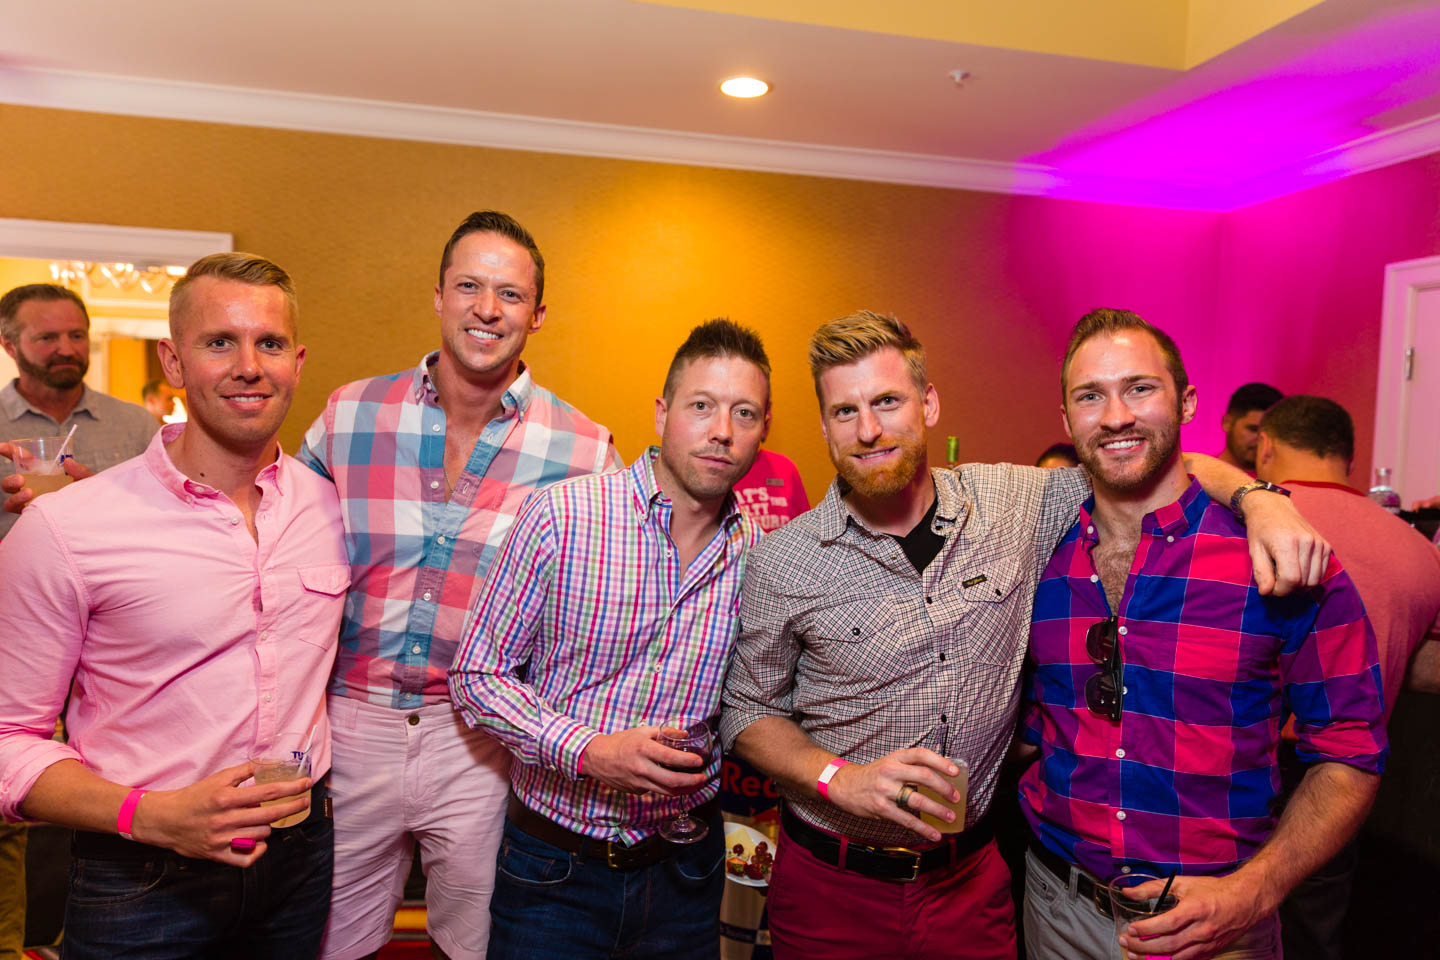 Pink Party at the Hotel Monaco